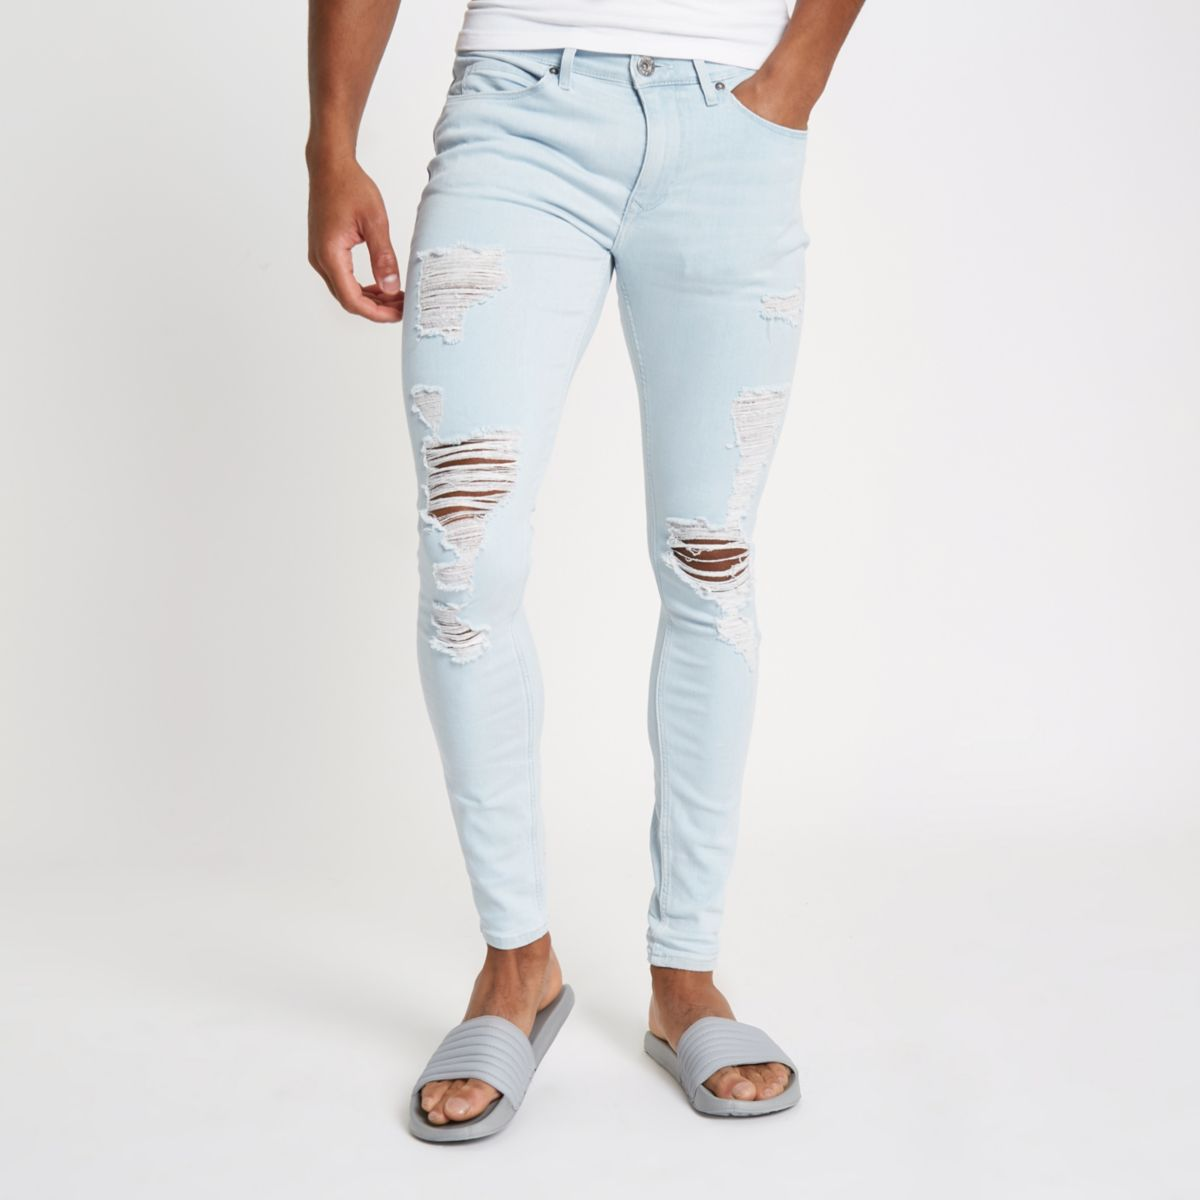 Light Blue Ollie Ripped Spray On Skinny Jeans by River Island